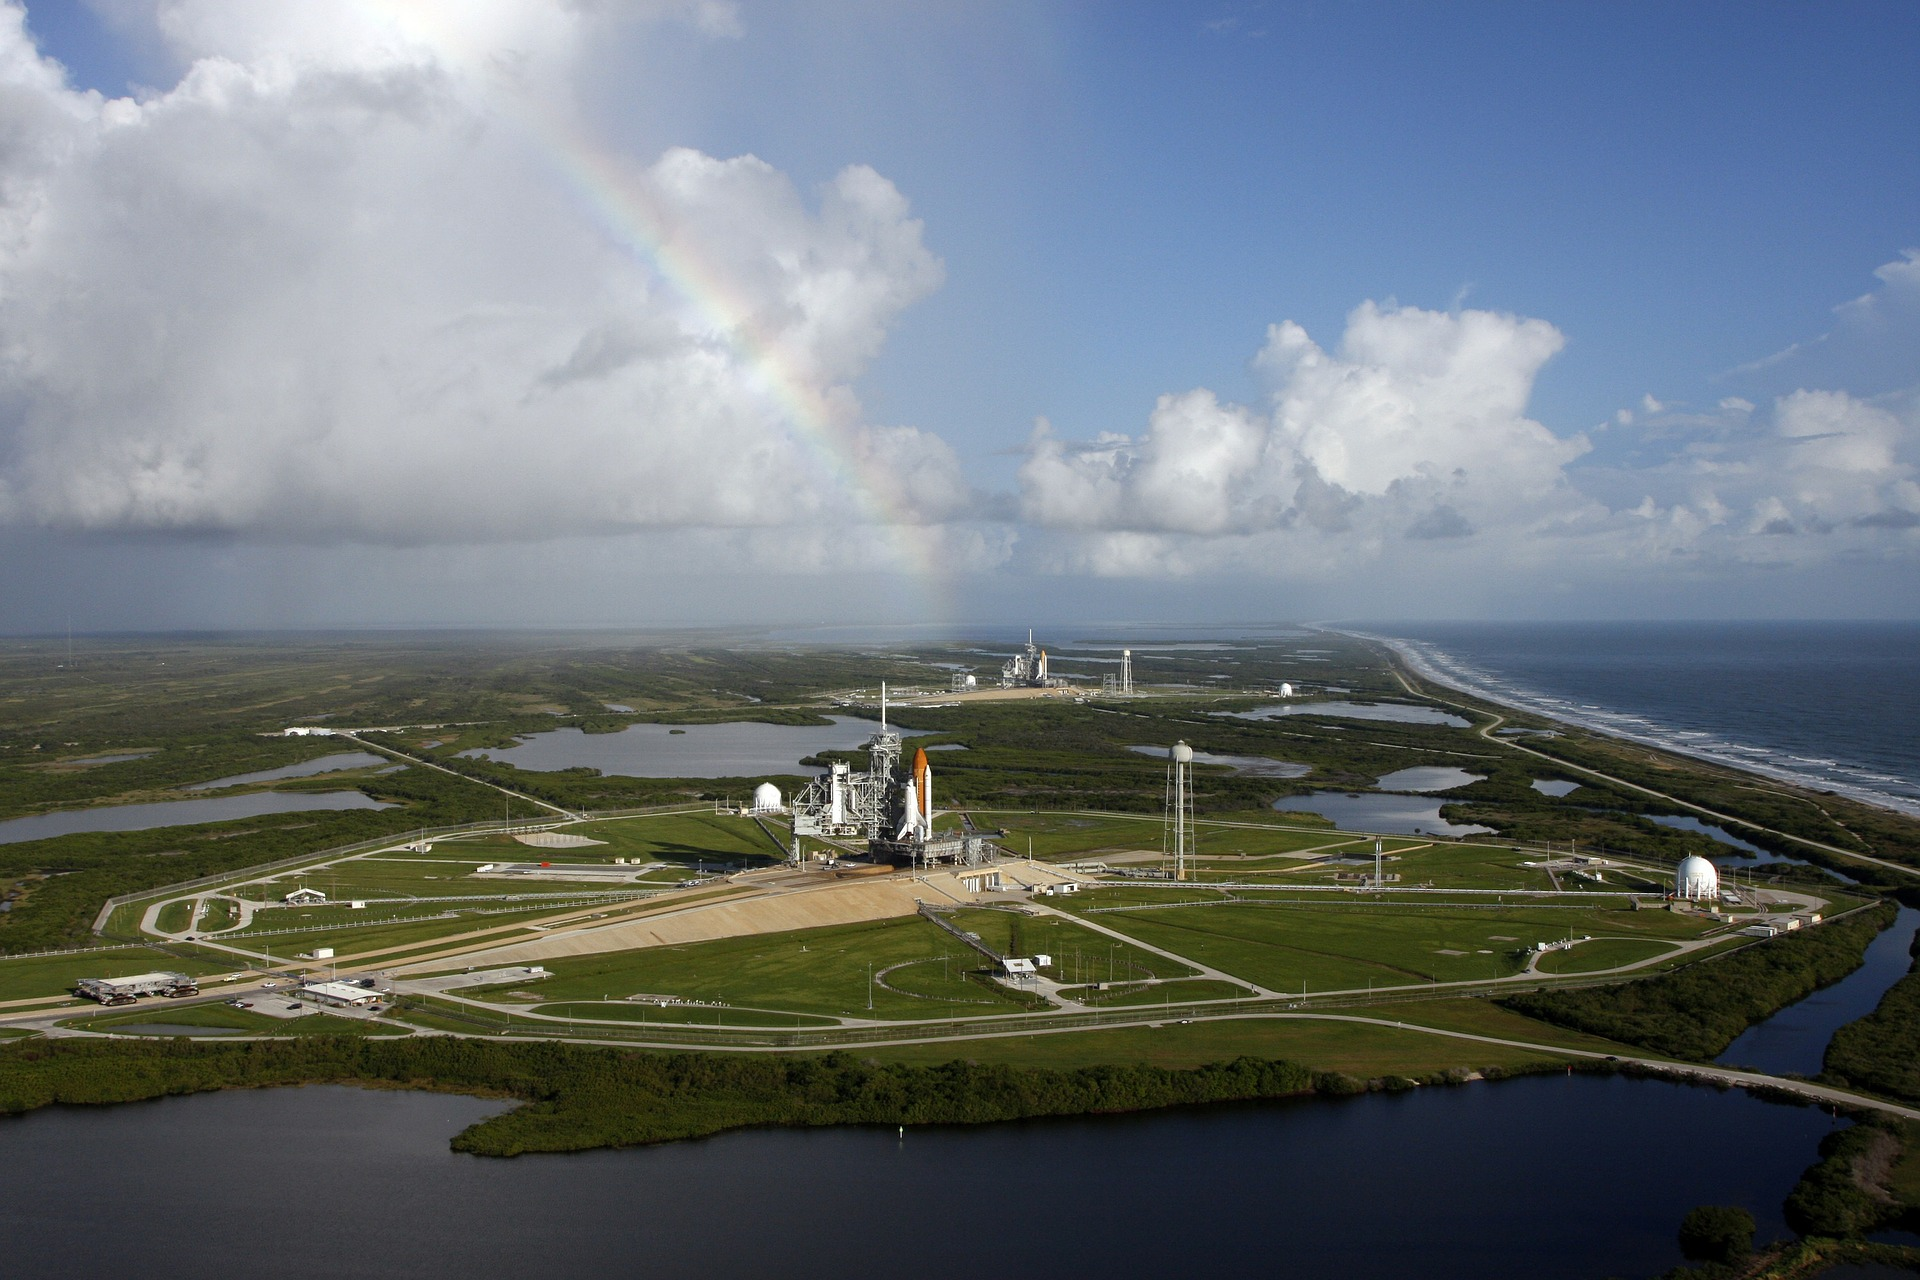 UK Space Agency Launches Horizontal Spaceport Development Fund